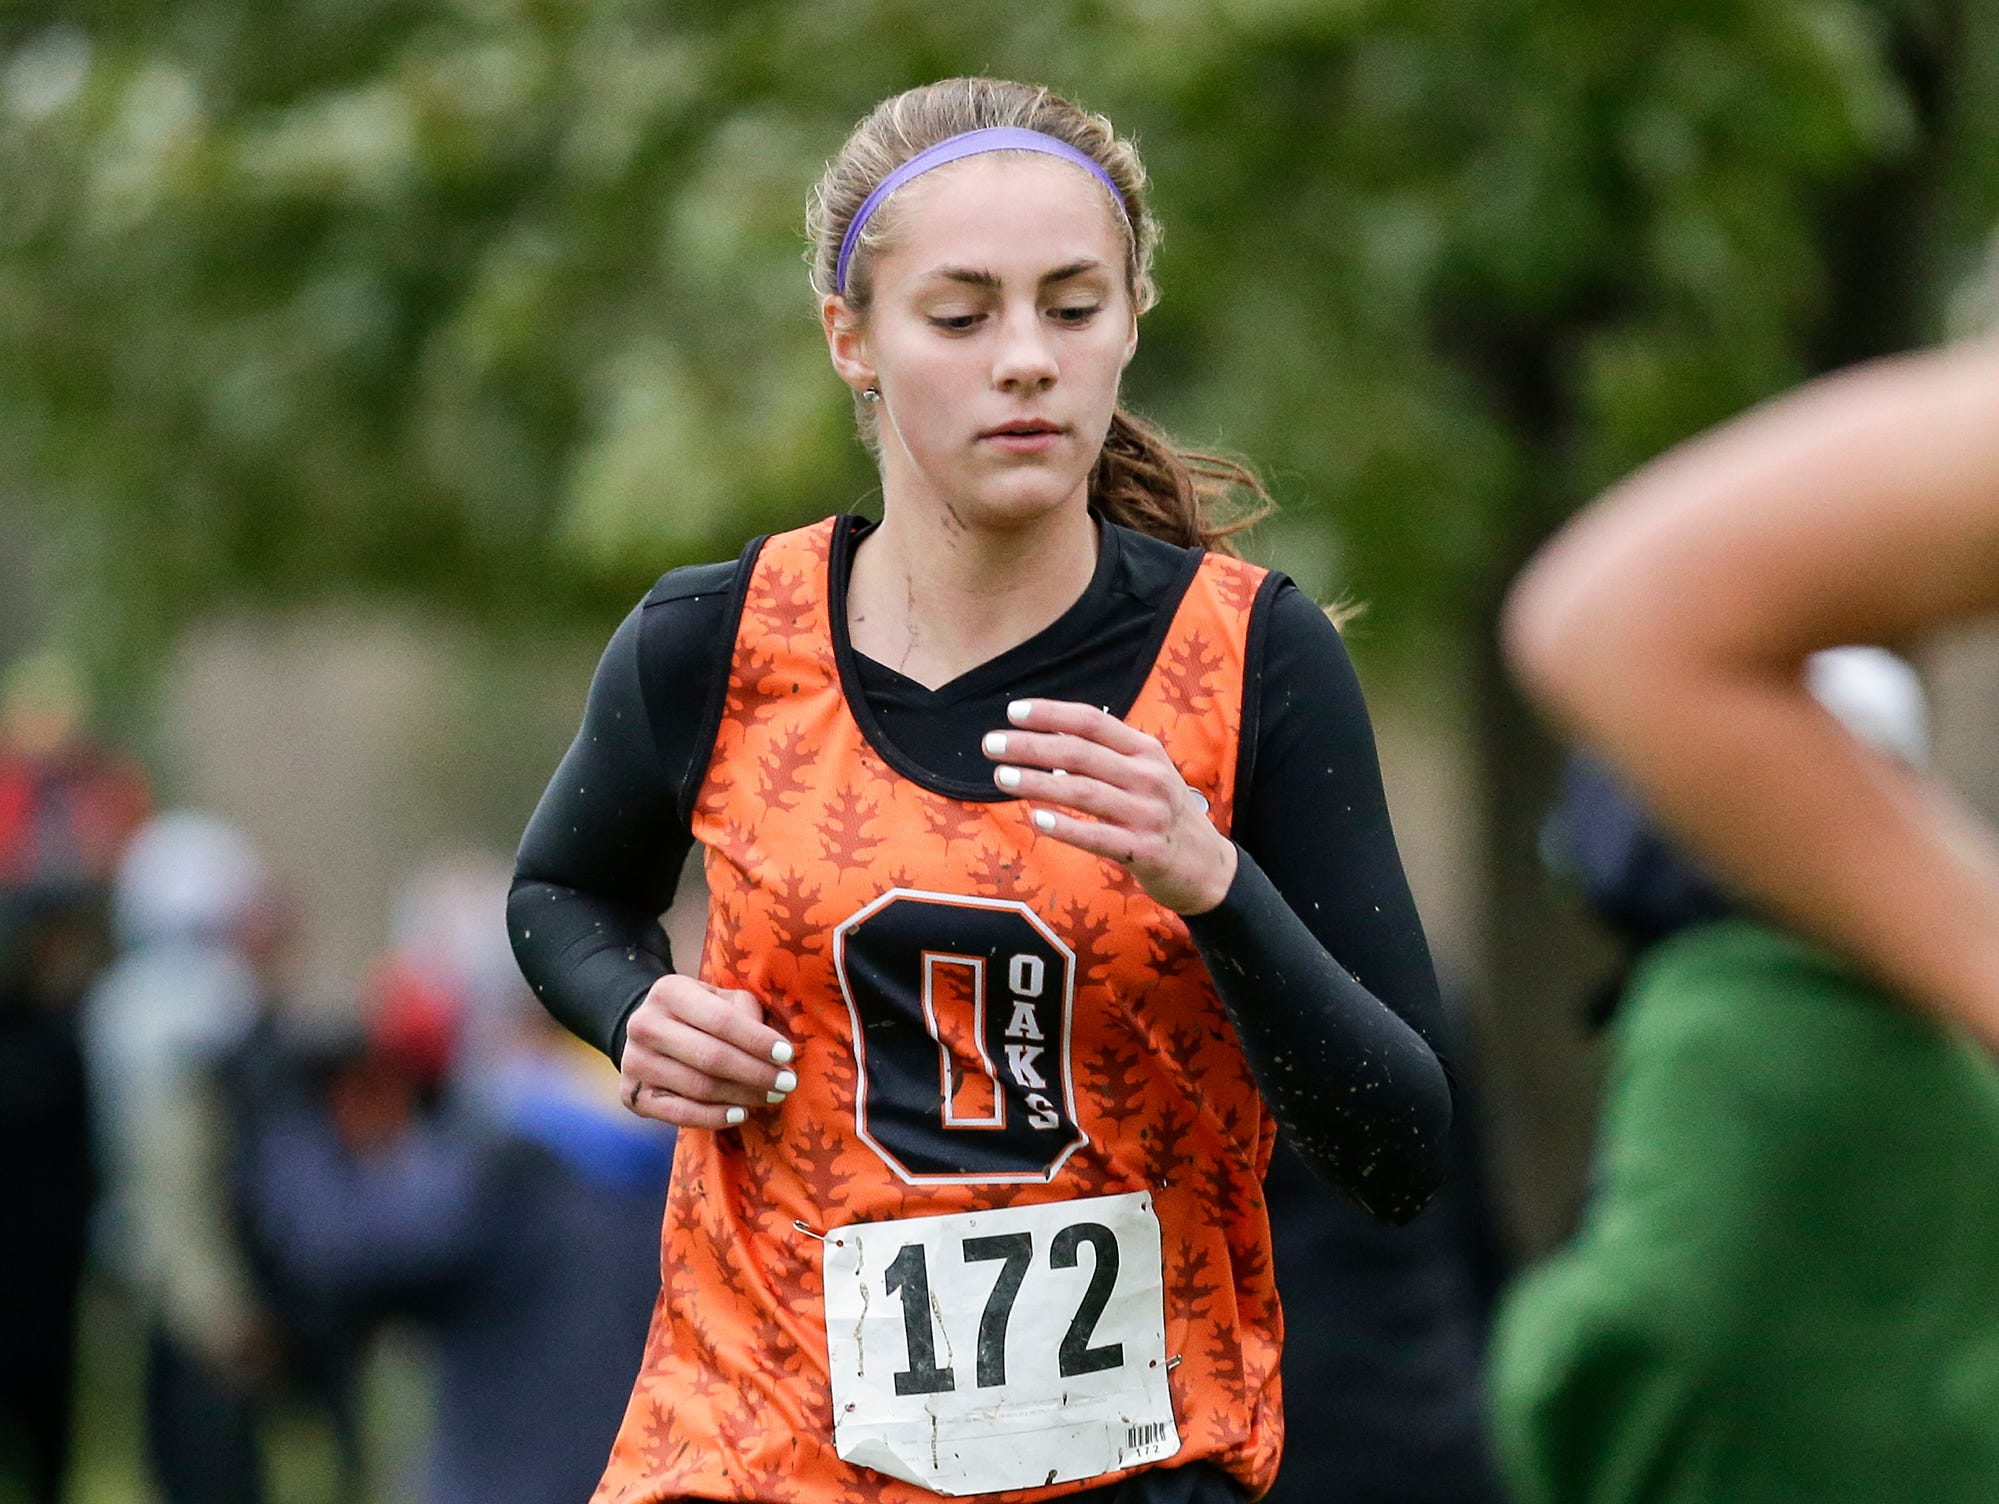 North Fond du Lac High School's Grace Maurer runs in the WIAA Division two Mayville sectional cross country meet at the Mayville golf course Friday, October 19, 2018. Doug Raflik/USA TODAY NETWORK-Wisconsin